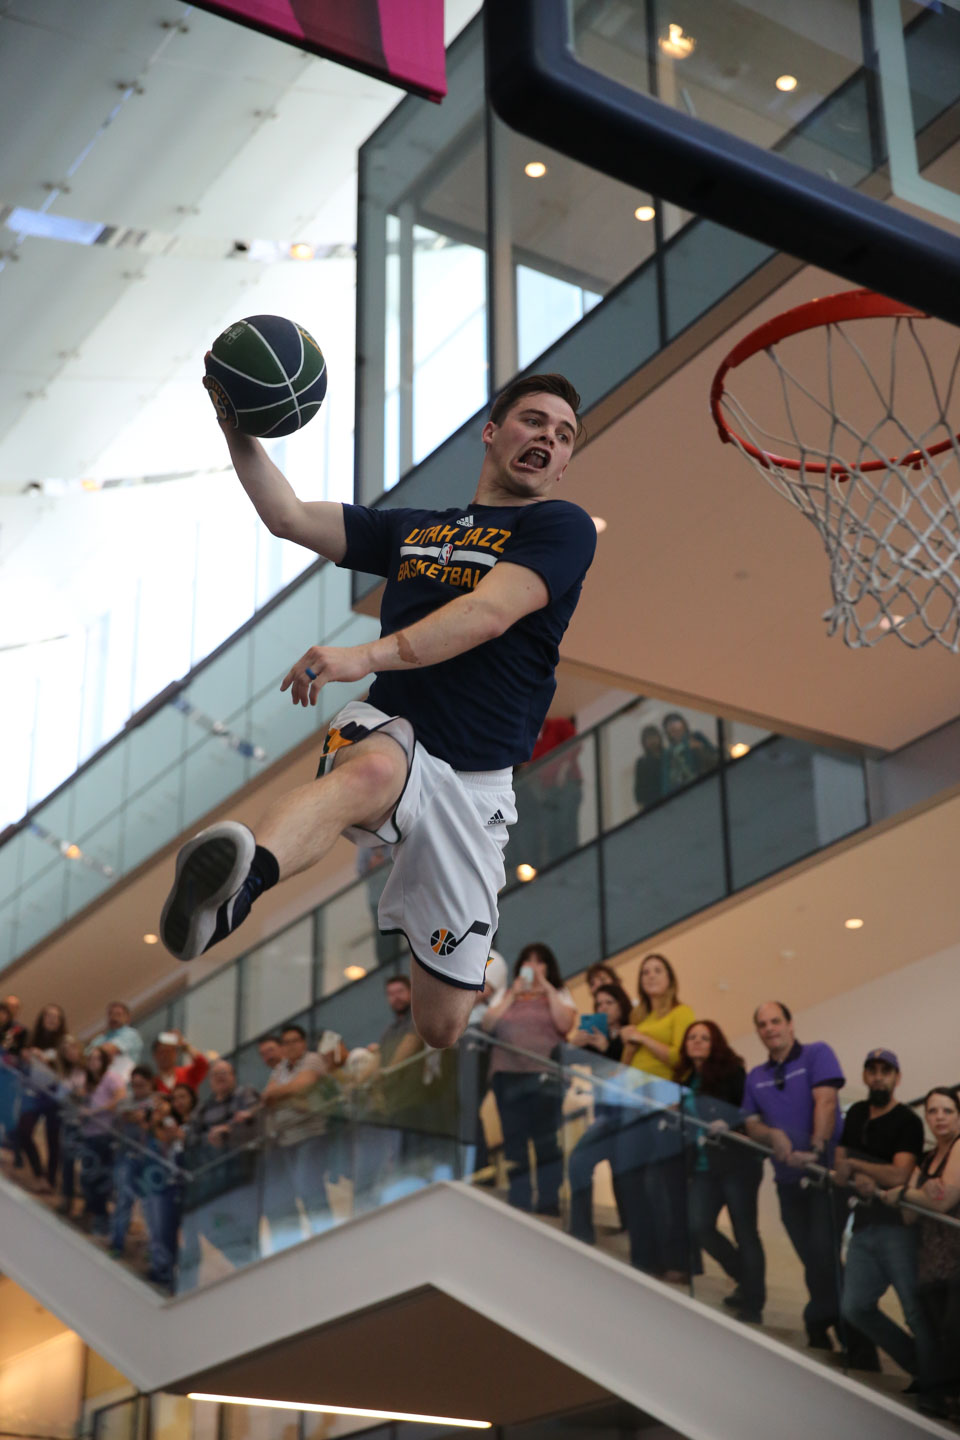 Utah Jazz Dunk Team perform amazing stunts